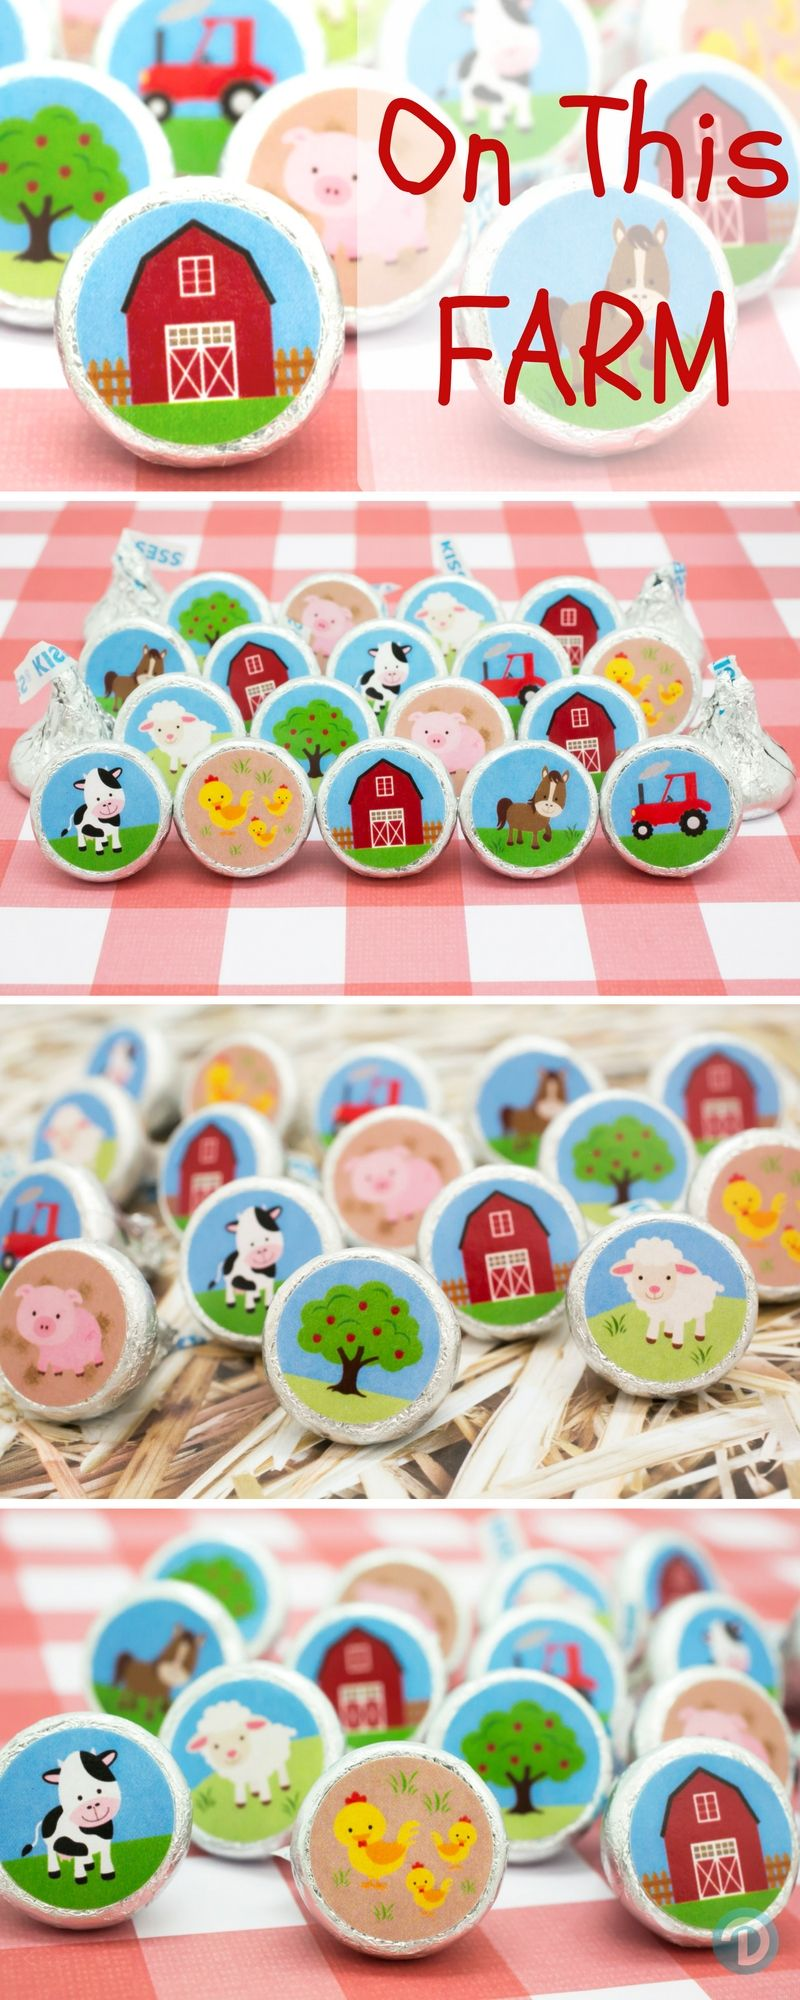 barnyard party farm animals stickers set of 324 favors